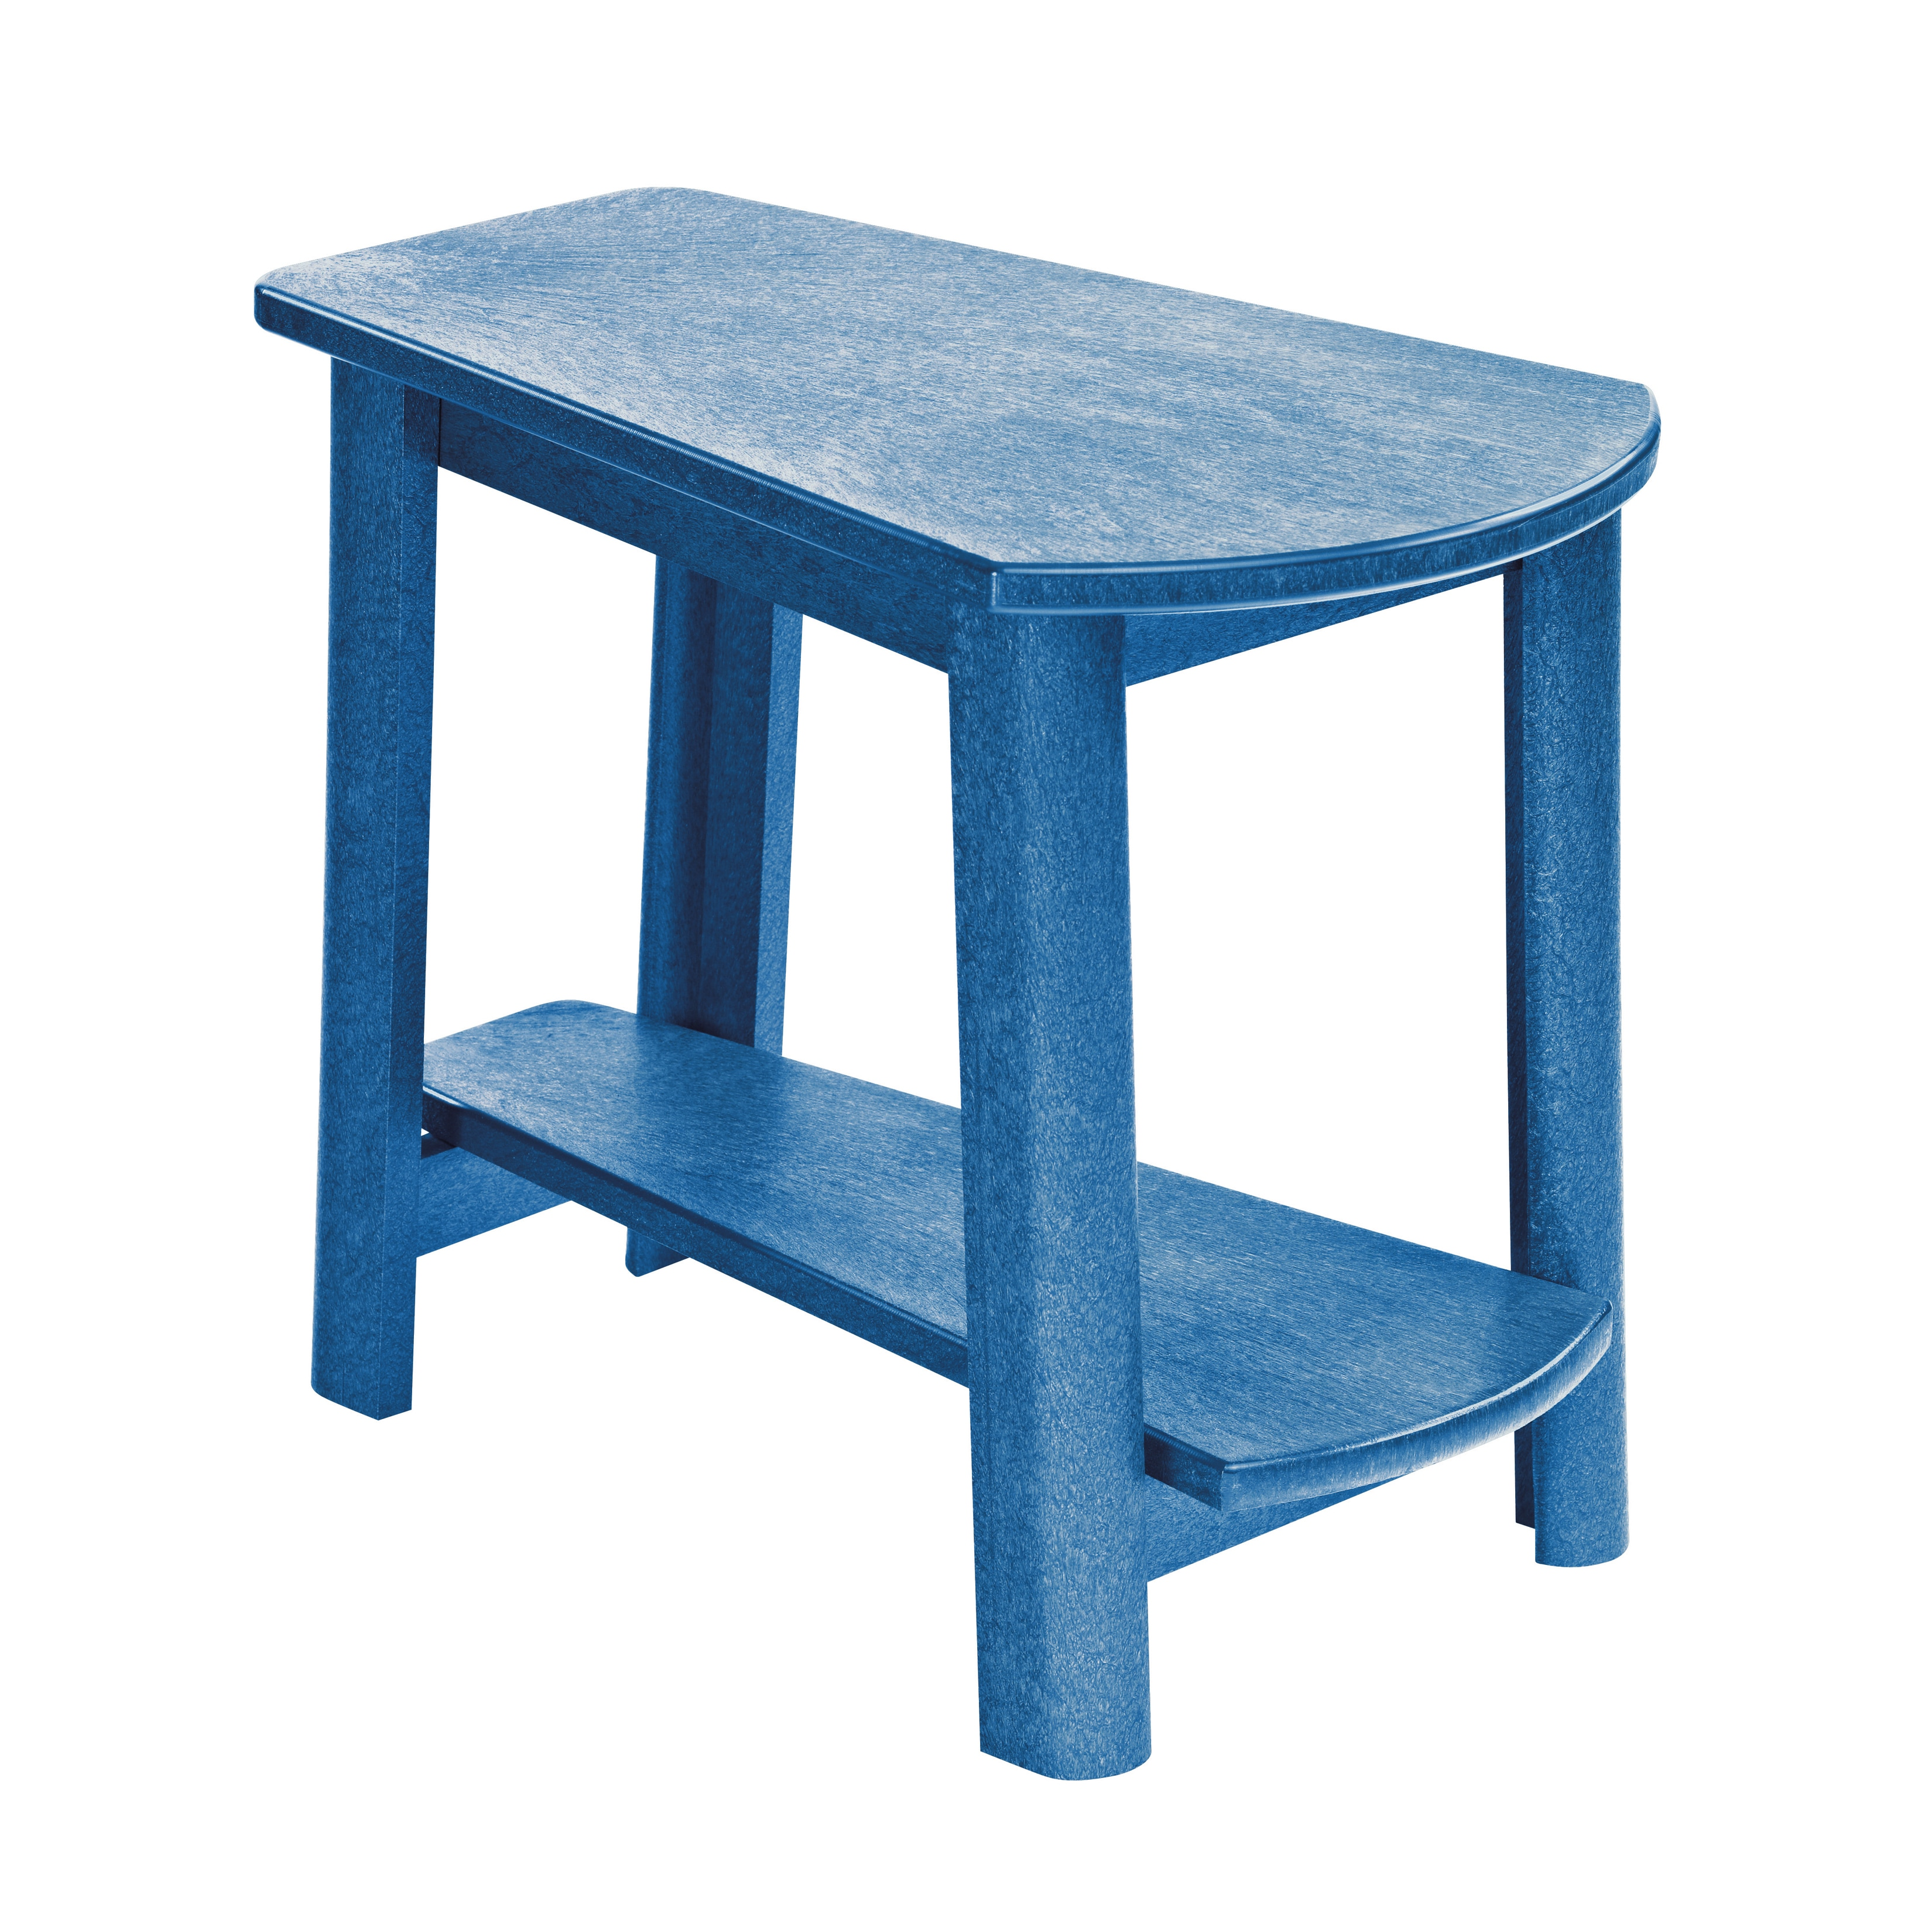 generations blue accent table free shipping today outdoor target tables wood jcpenney quilts brown side cool lamps modern room essentials stacking patio furniture covers clearance